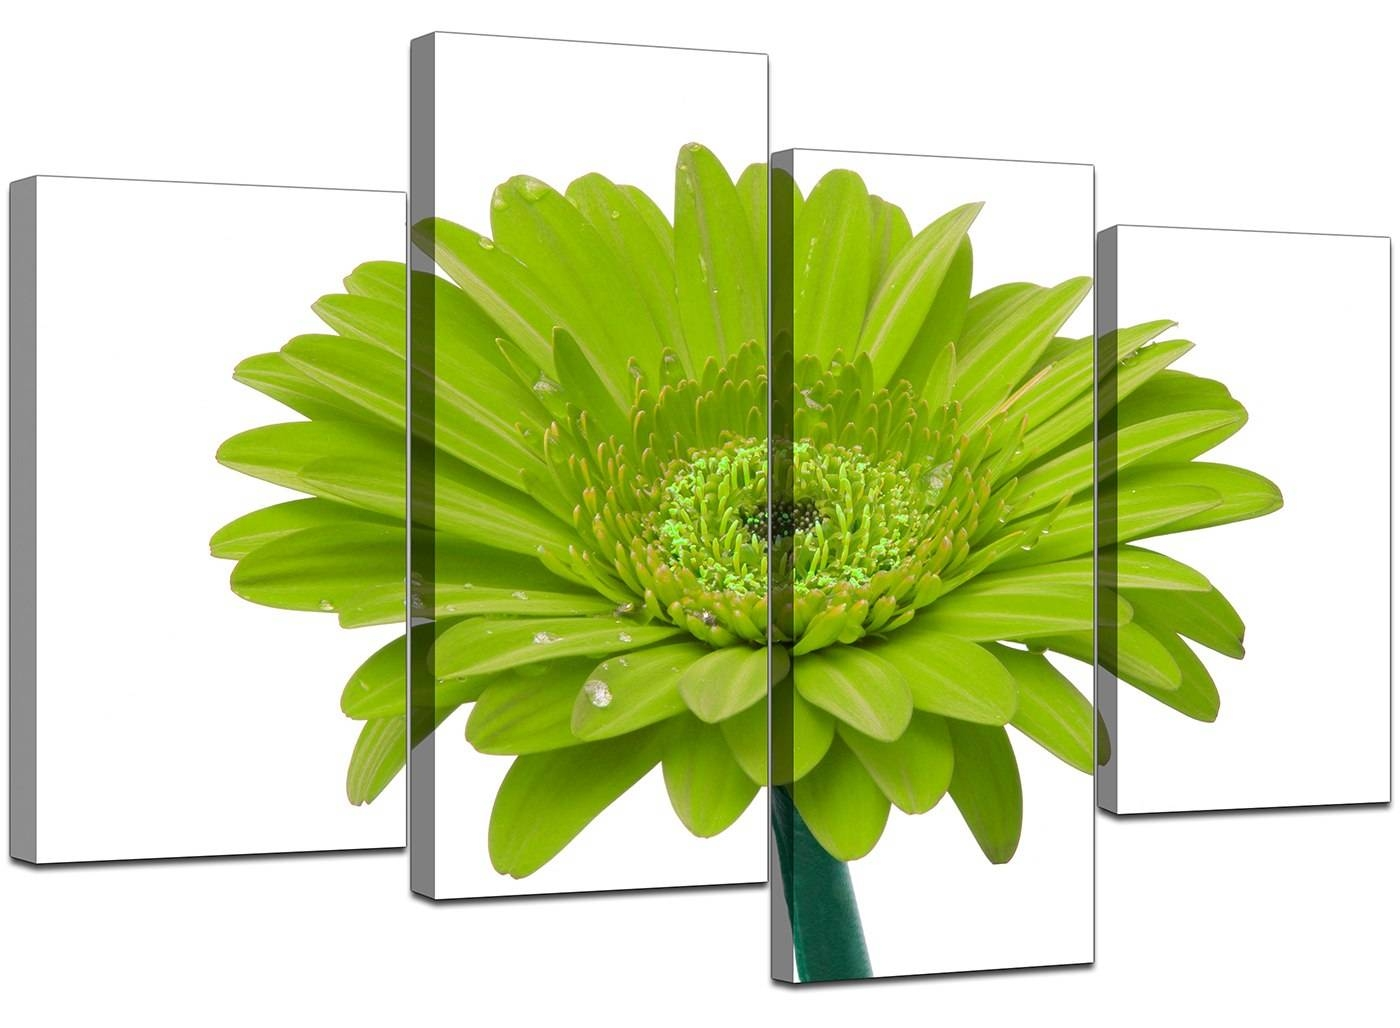 Canvas Wall Art Of Flower In Lime Green For Your Living Room With Regard To Latest Lime Green Wall Art (View 15 of 20)